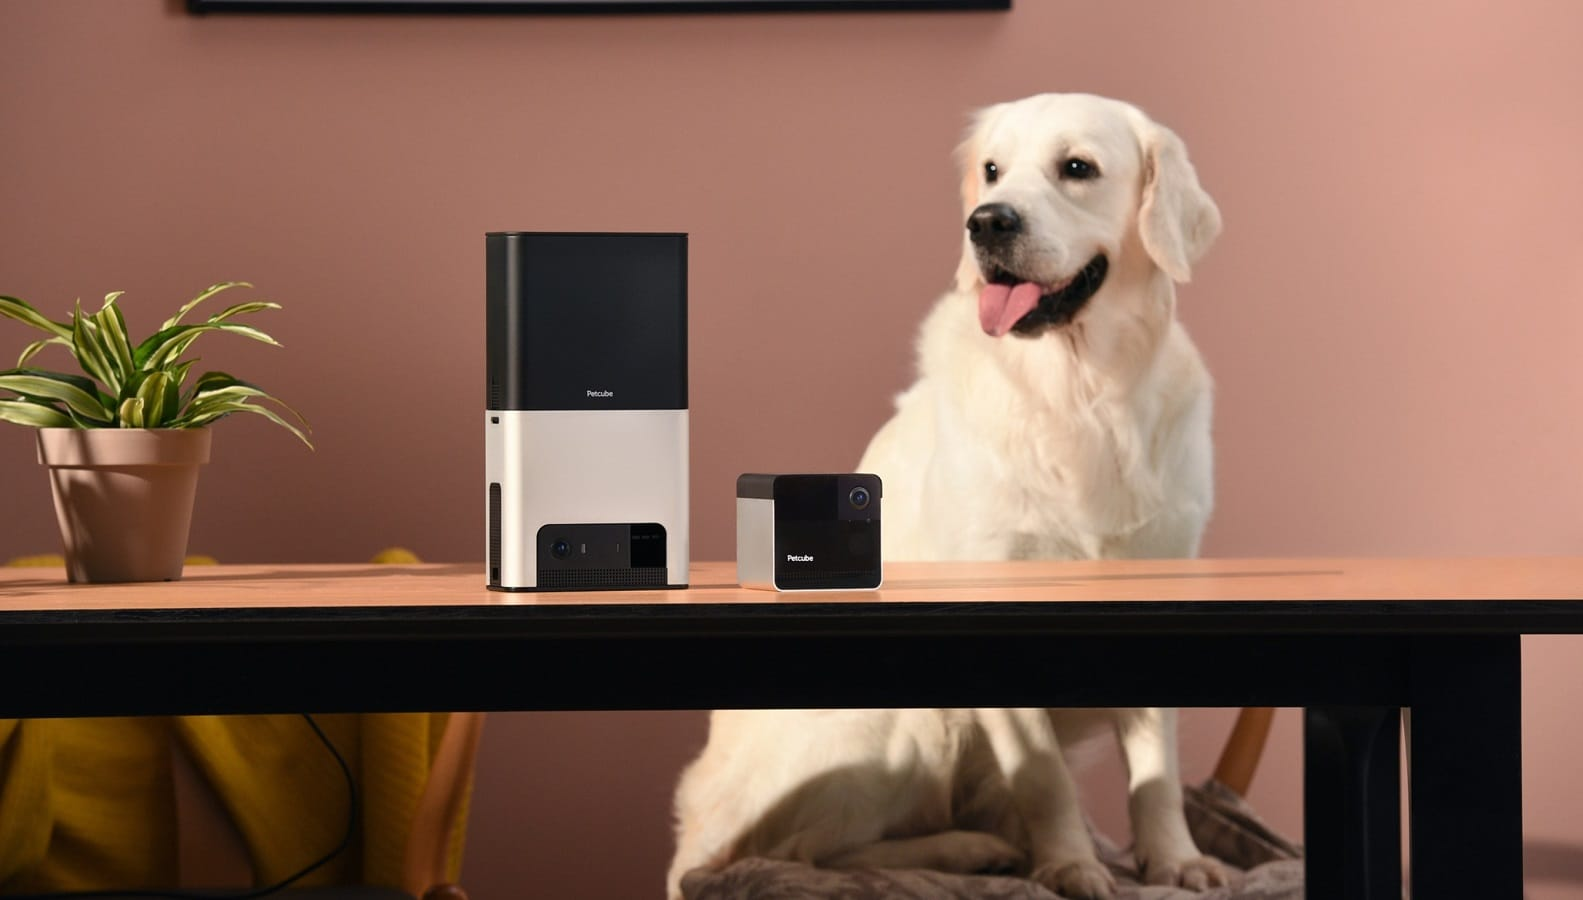 petcube smart monitors on table with dog in background